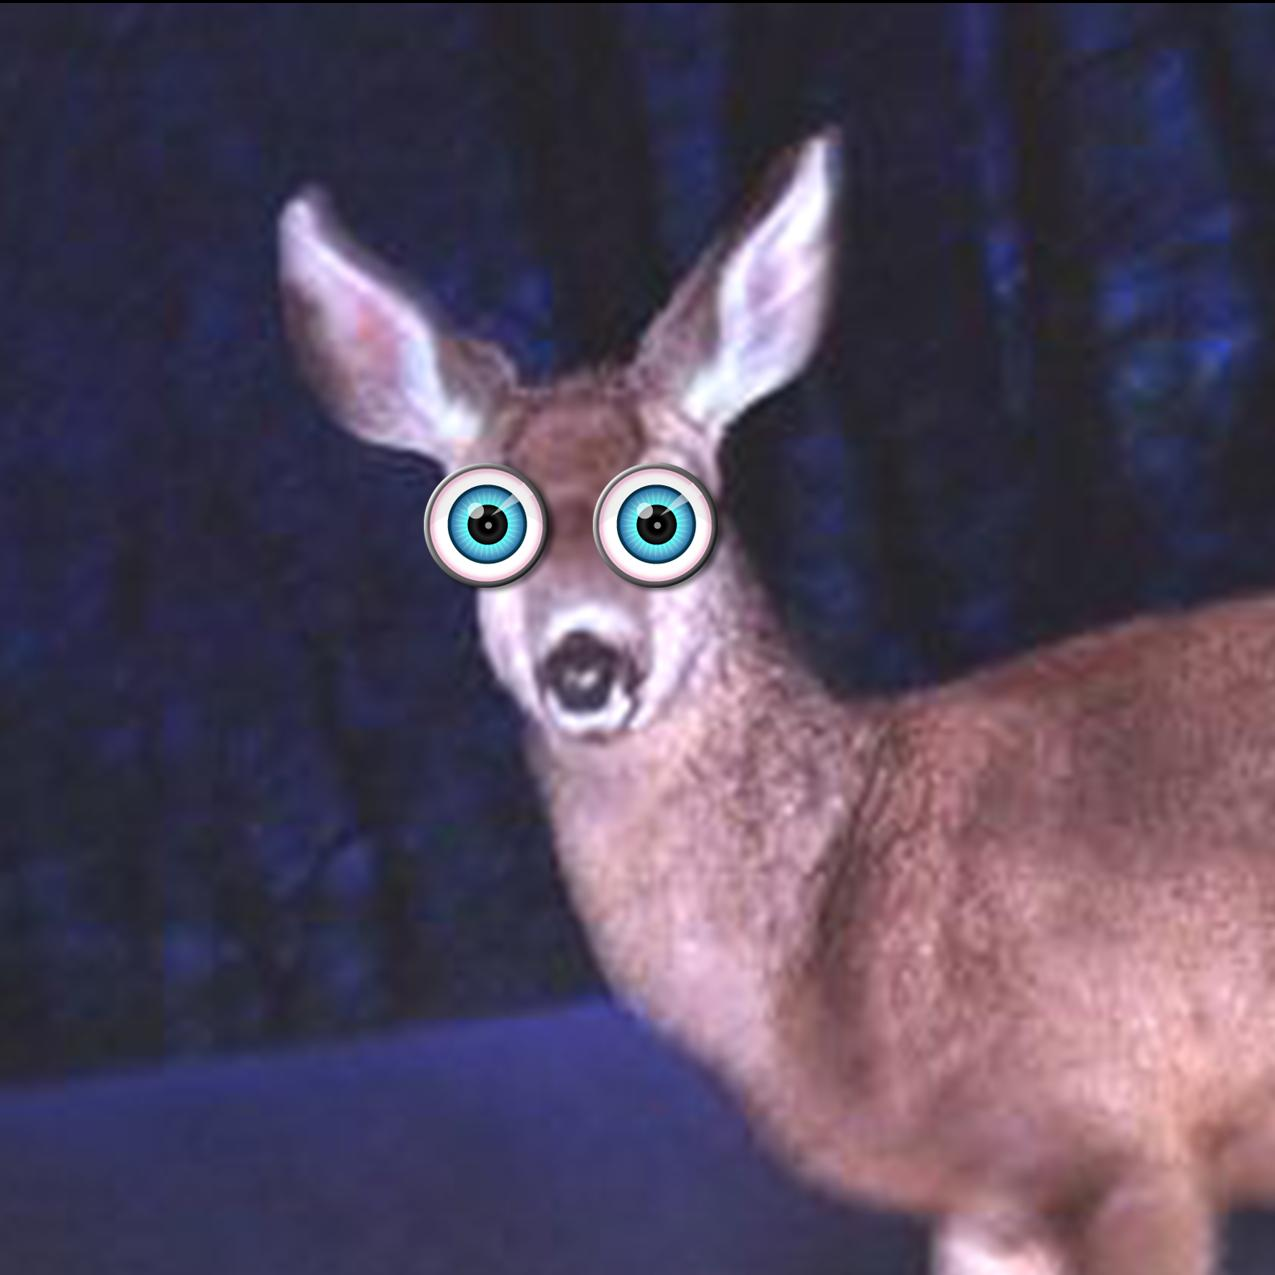 Image result for deer staring into headlights